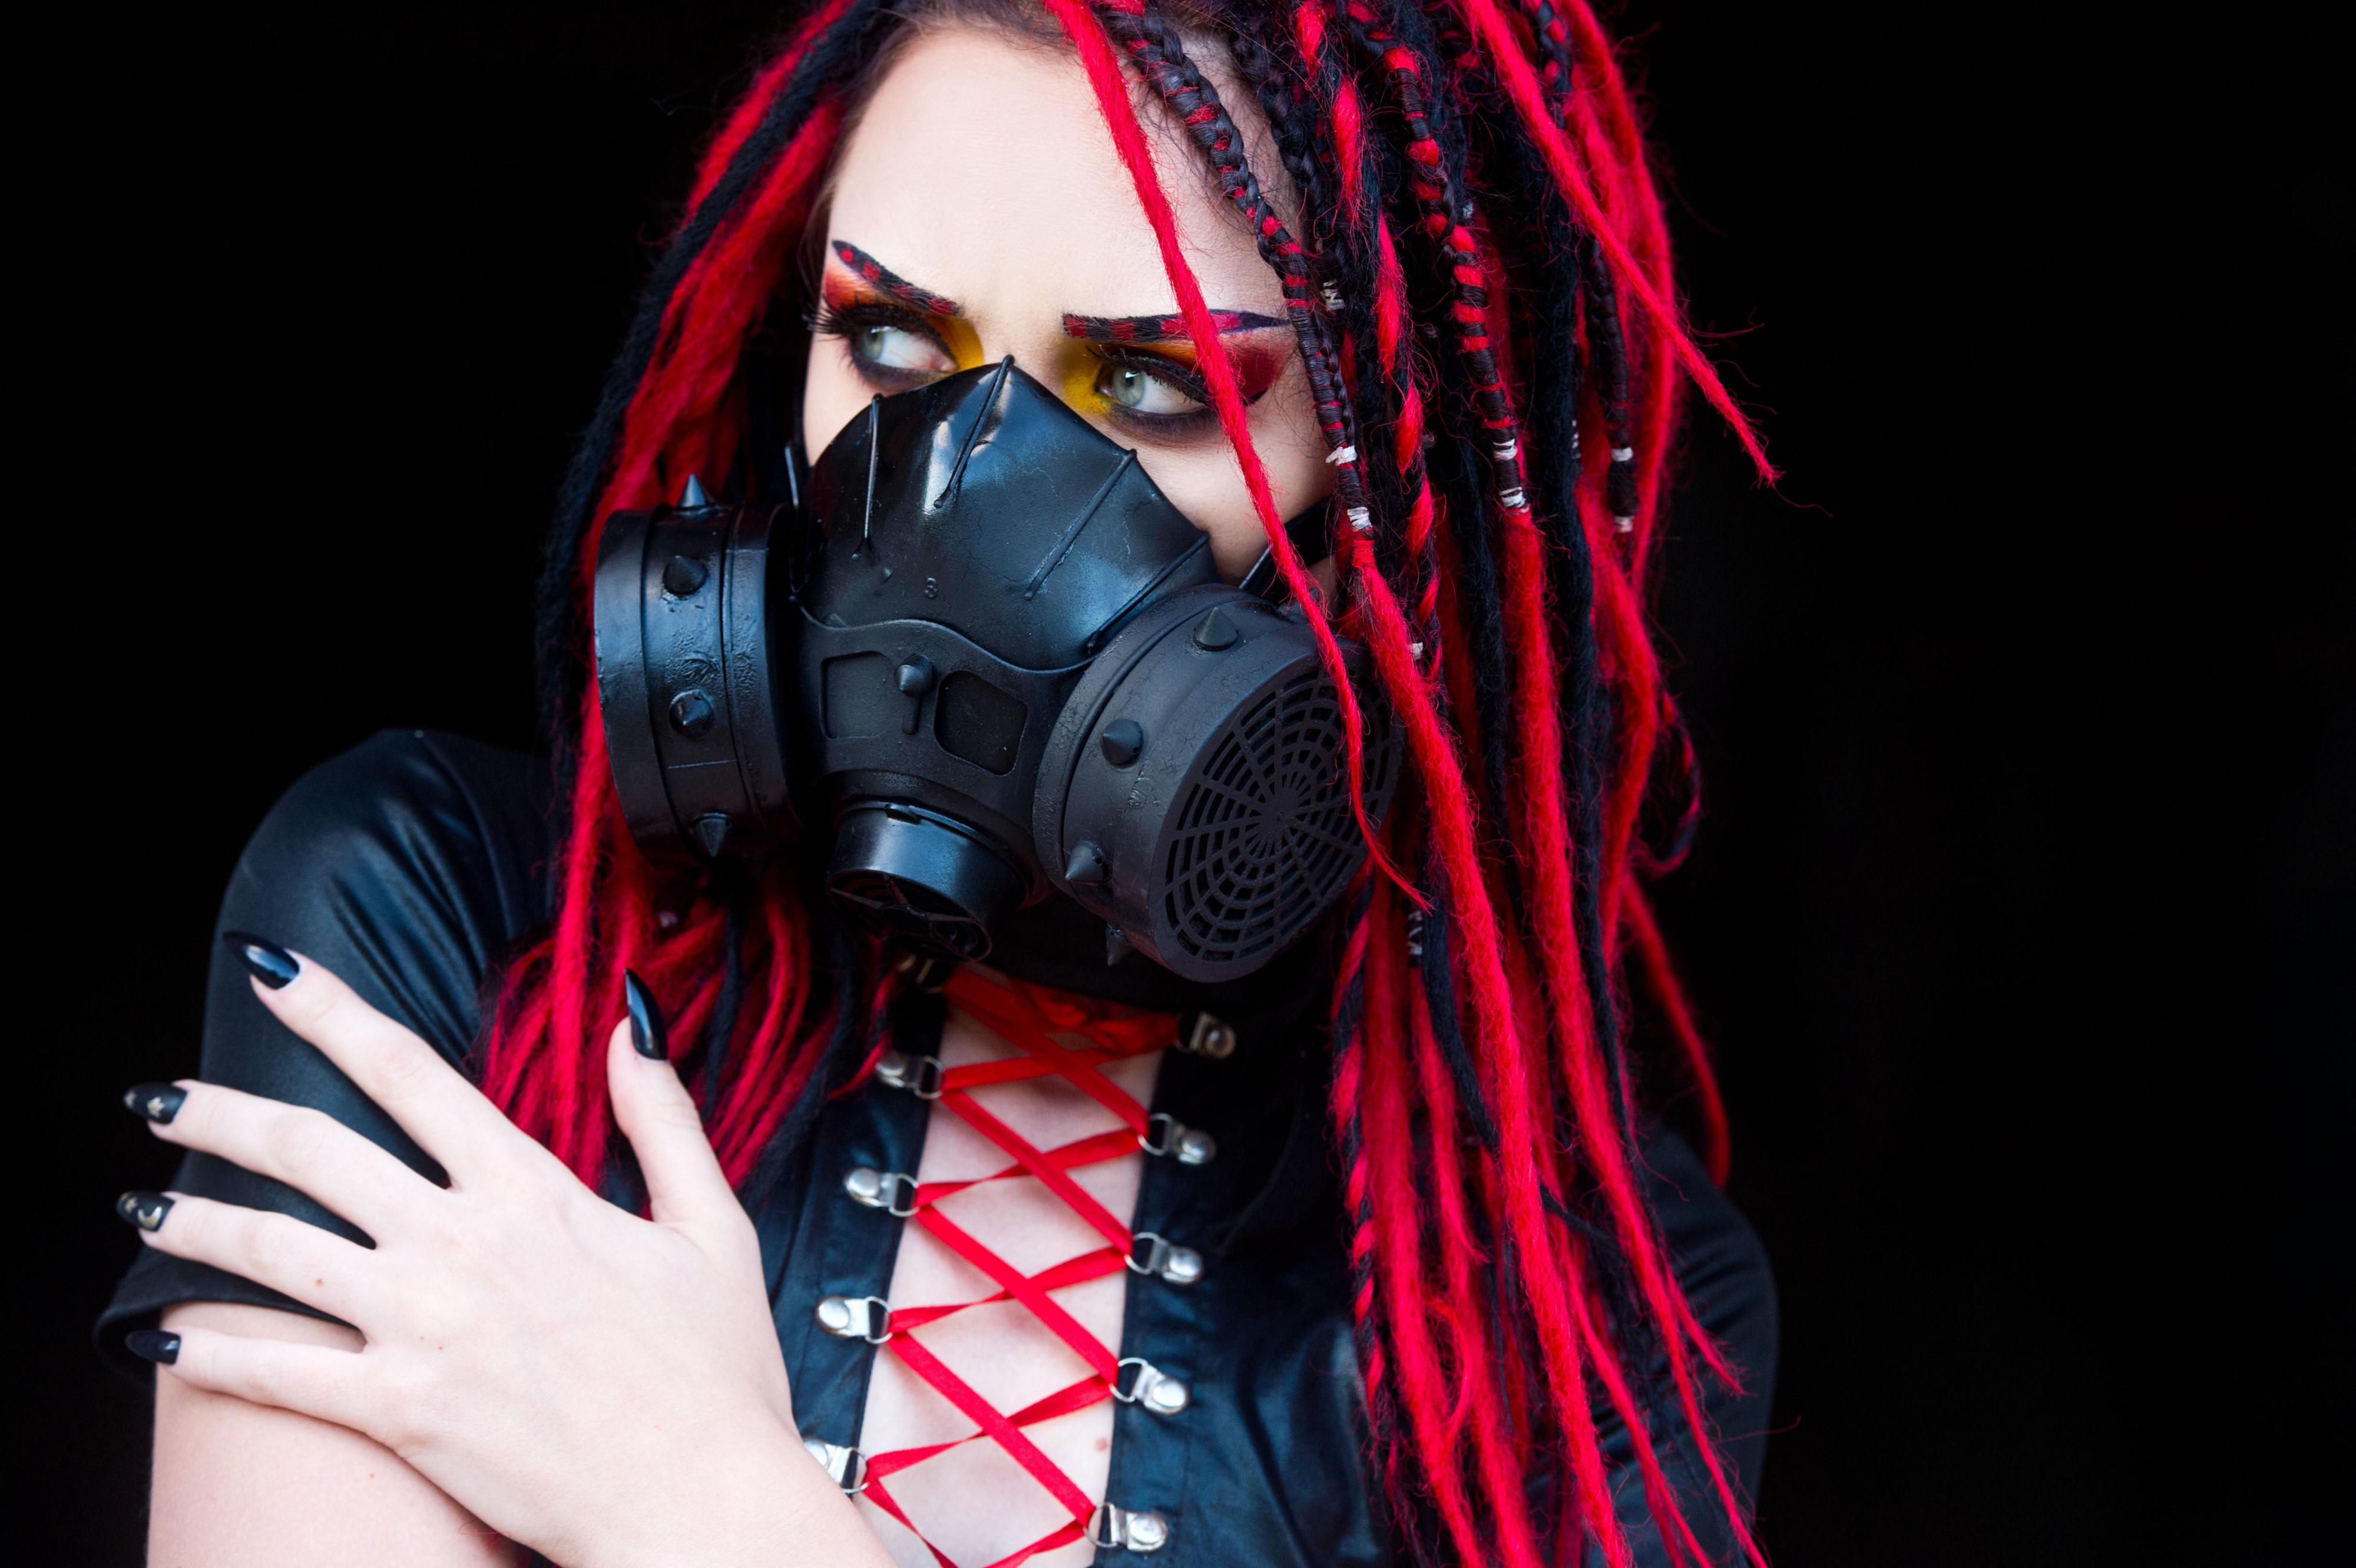 Young goth woman with bright red dreads and black spiked gas mask on black background staring camera-left